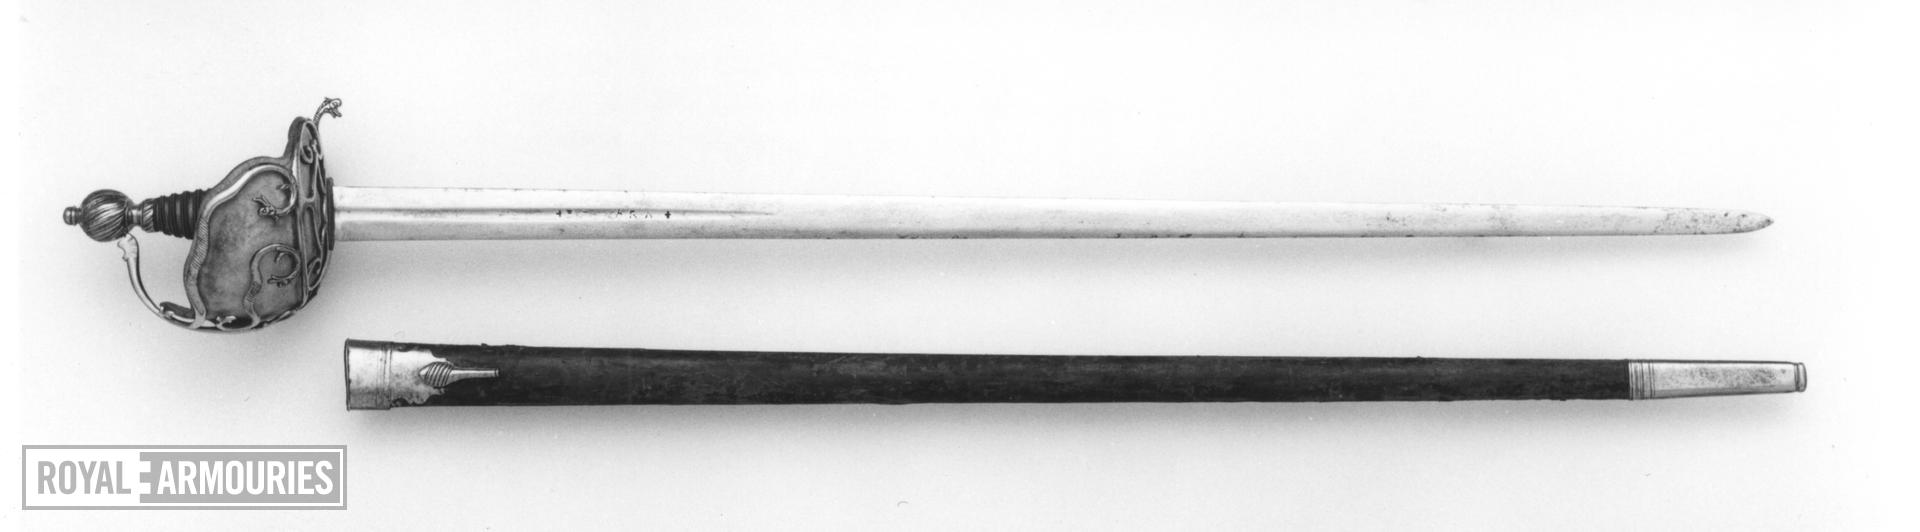 Sword Cavalry Officer's sword